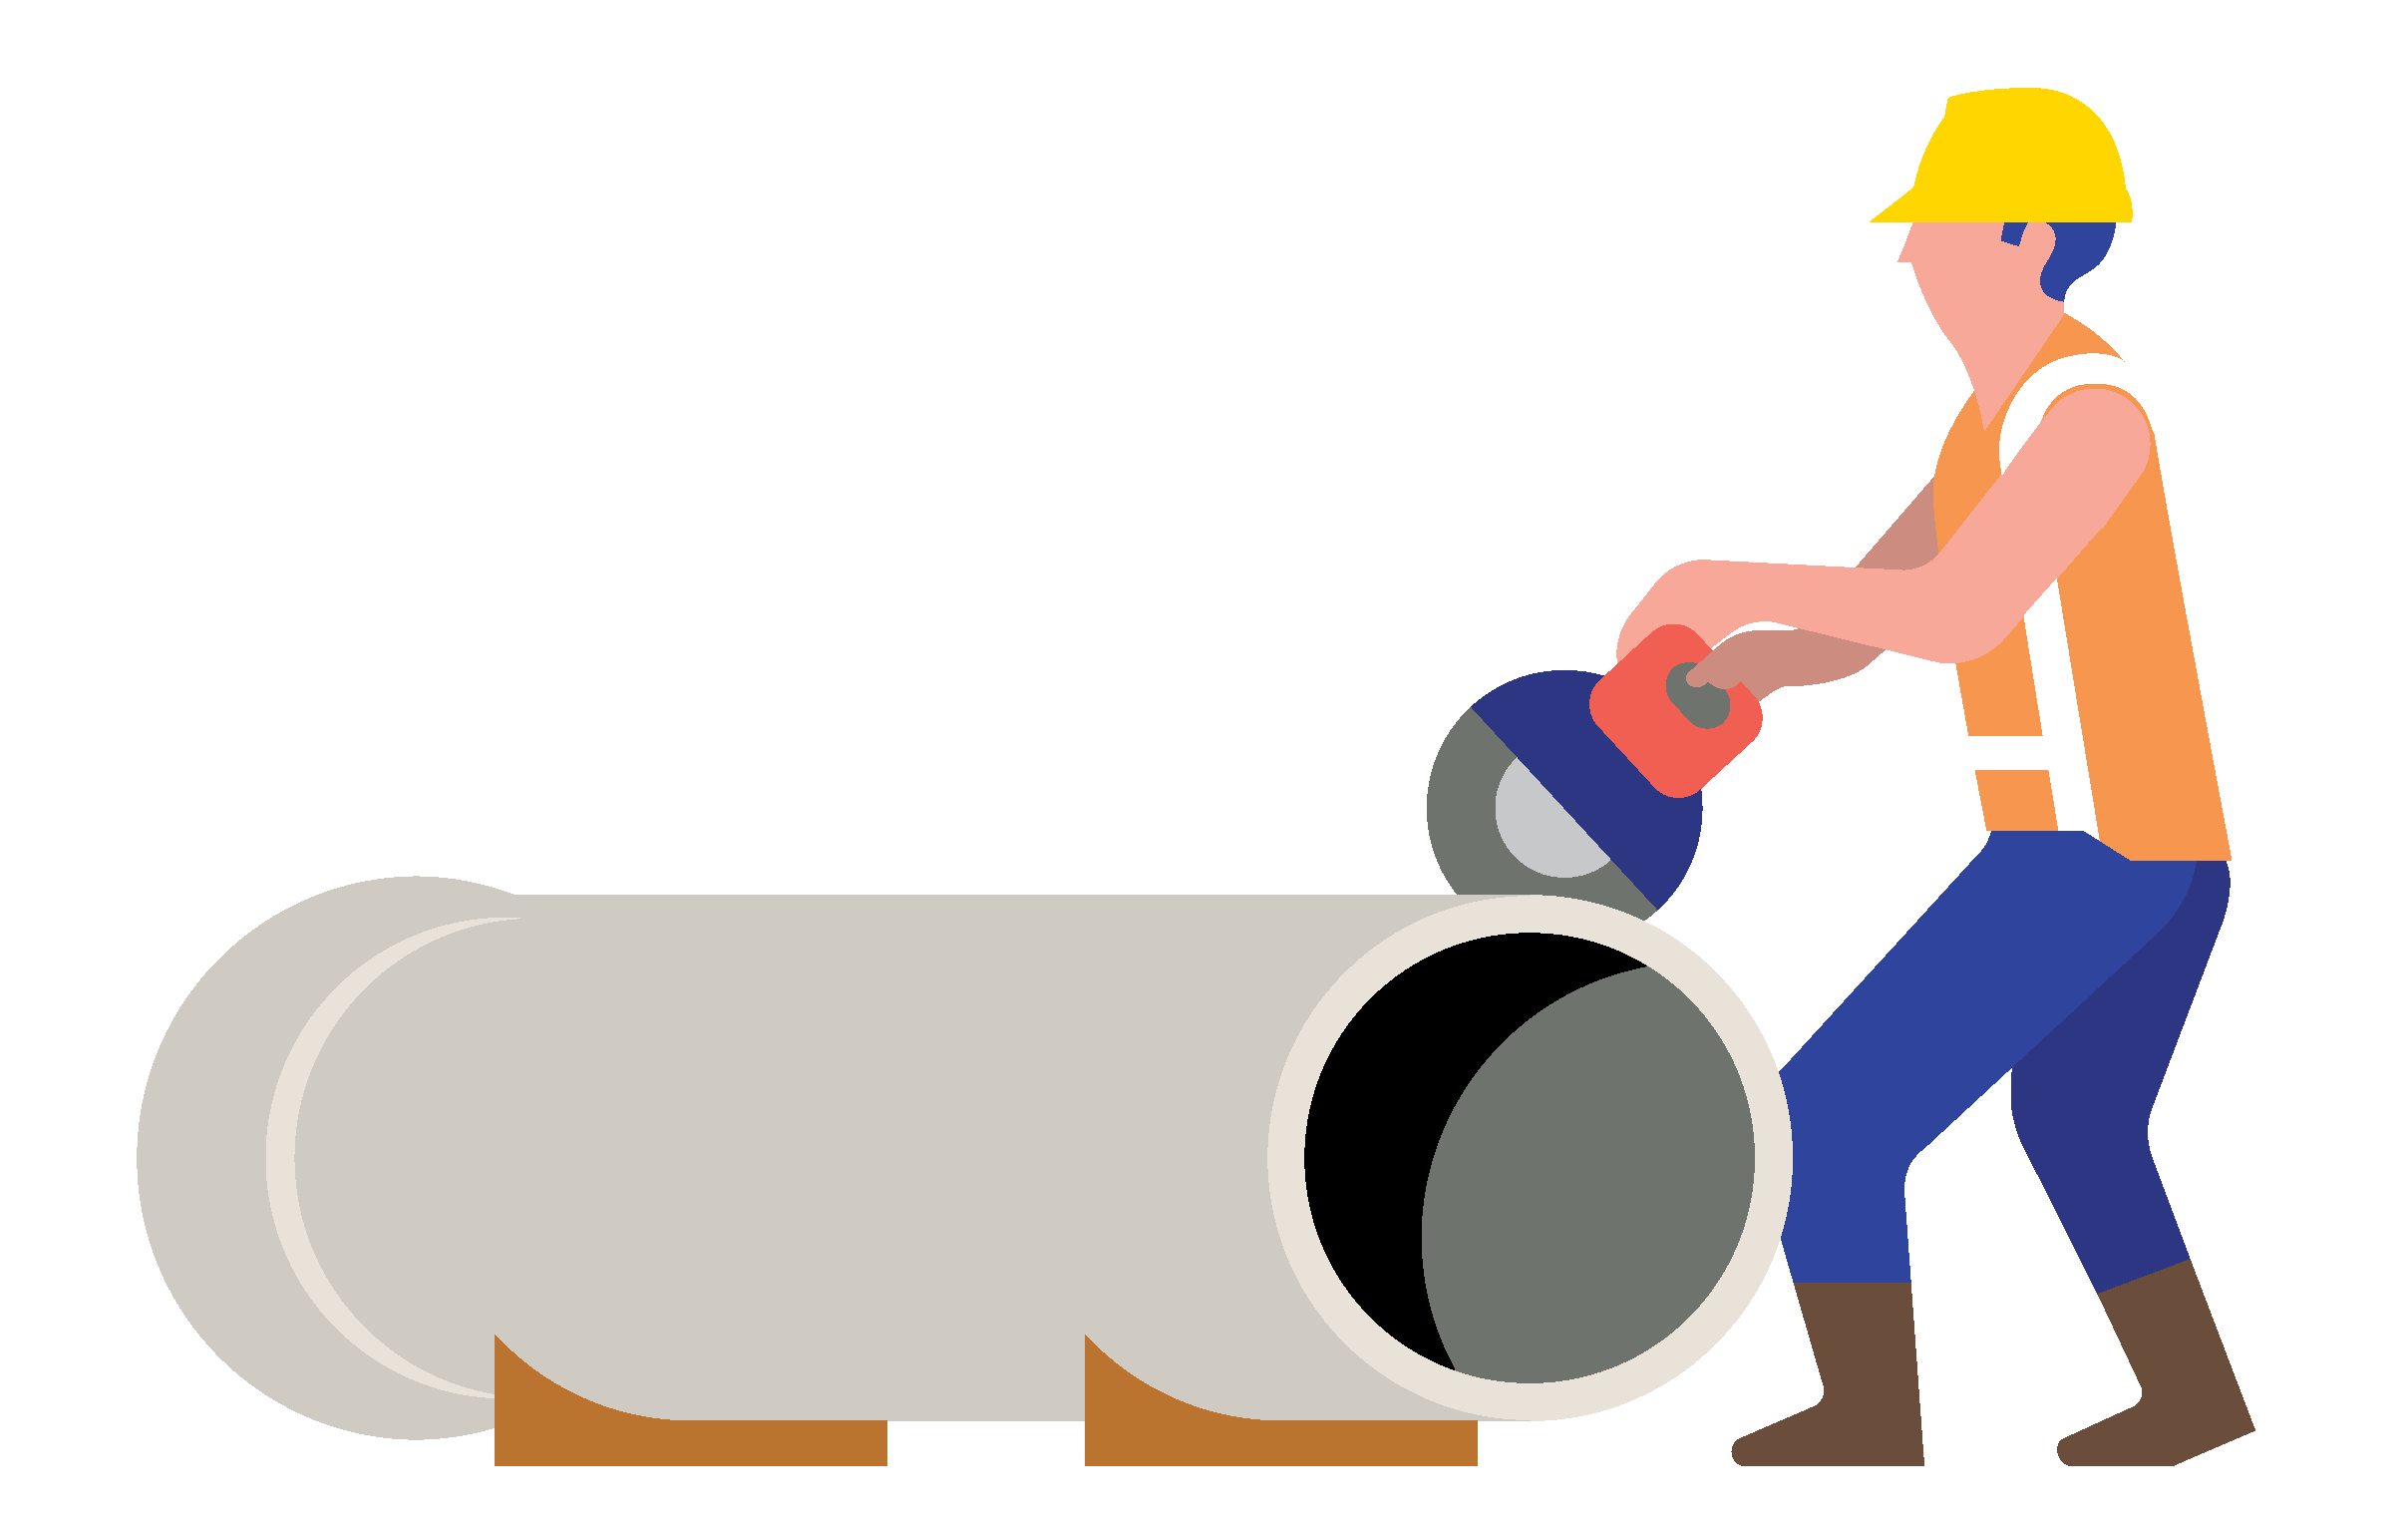 Illustration of a construction worker cutting a pipe with a circular saw.